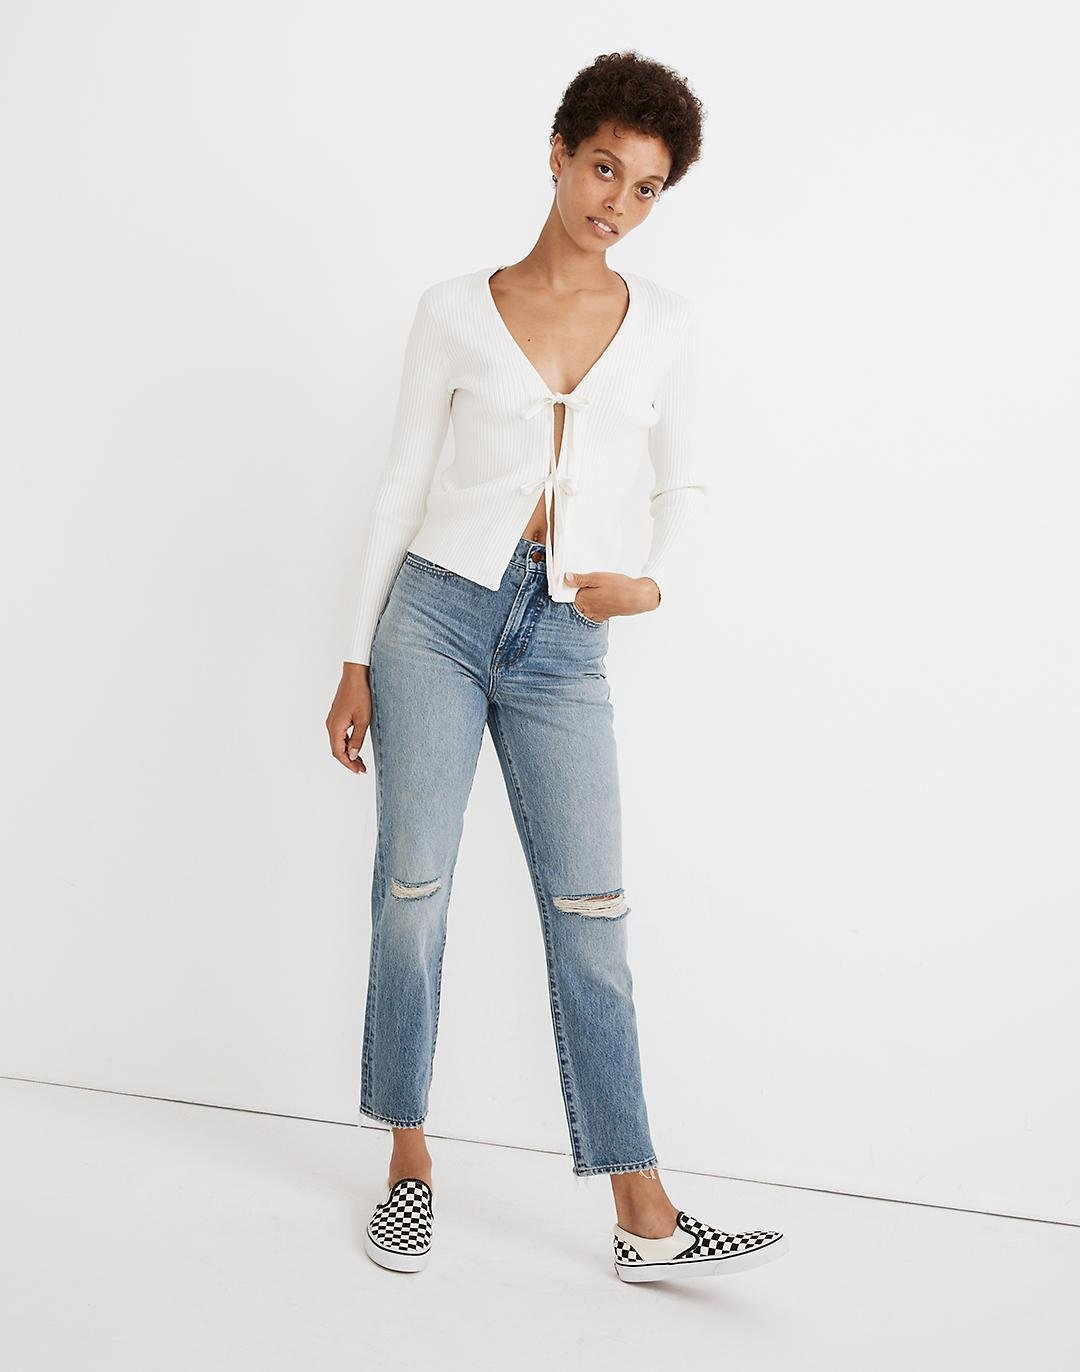 The Perfect Vintage Jean in Phillips Wash: Knee-Rips Edition